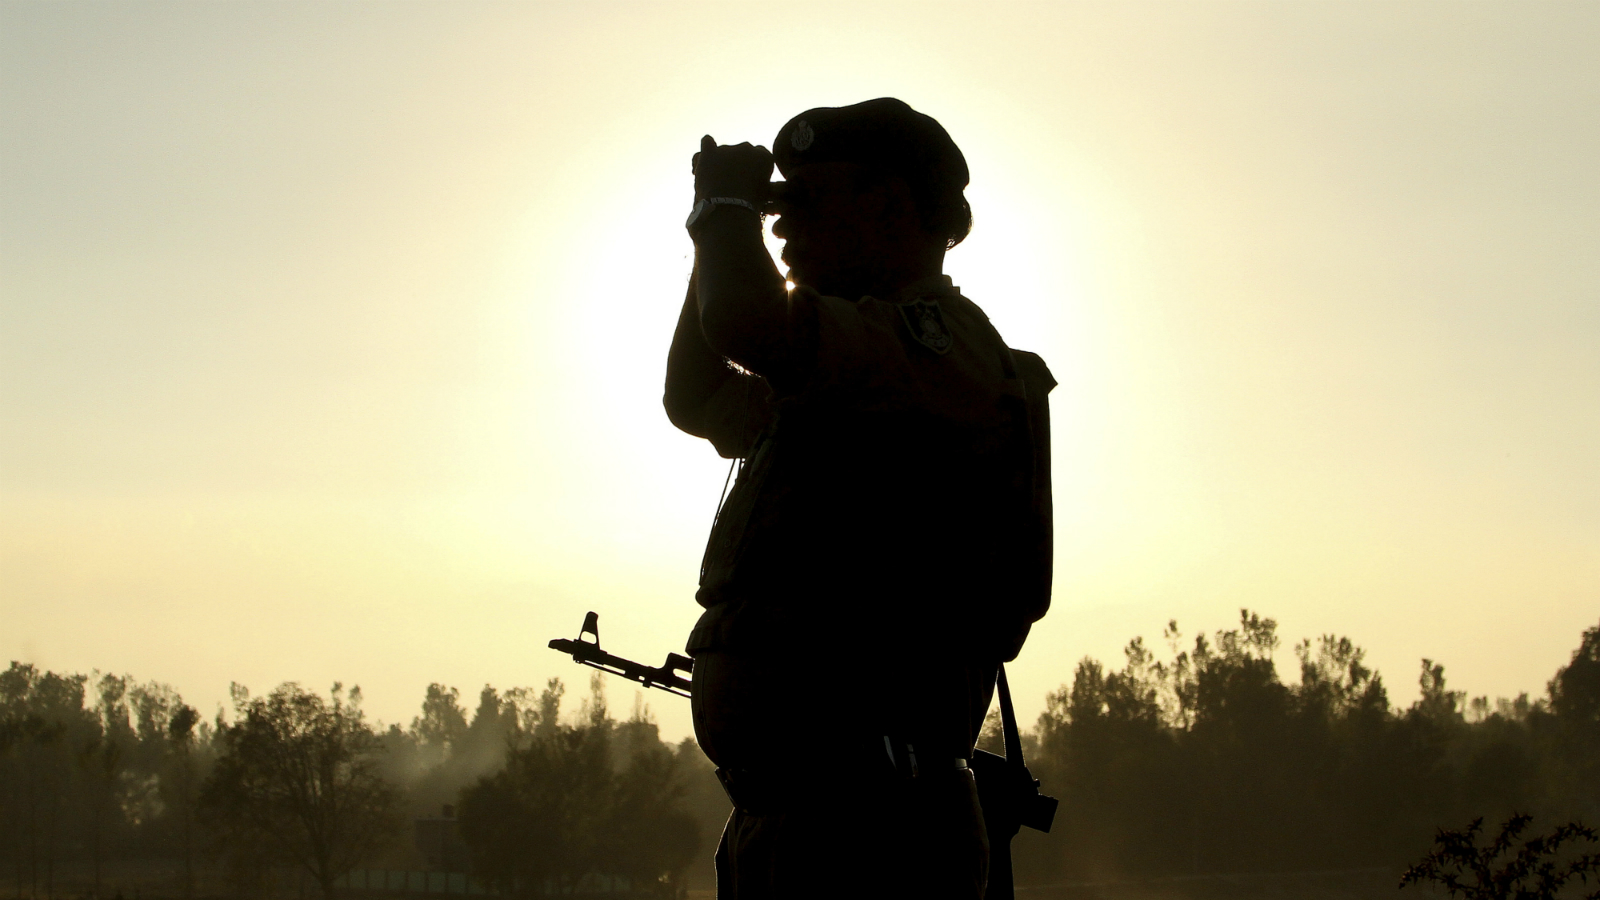 An Indian soldier looks through a binocular as he stands vigil near a building where suspected militants have taken refuge during a gun battle in Pampore, on the outskirts of Srinagar, Indian controlled Kashmir, Tuesday, Oct. 11, 2016. A handful of rebels holed up in a building in the Indian portion of Kashmir exchanged fire with government forces for the second straight day on Tuesday.